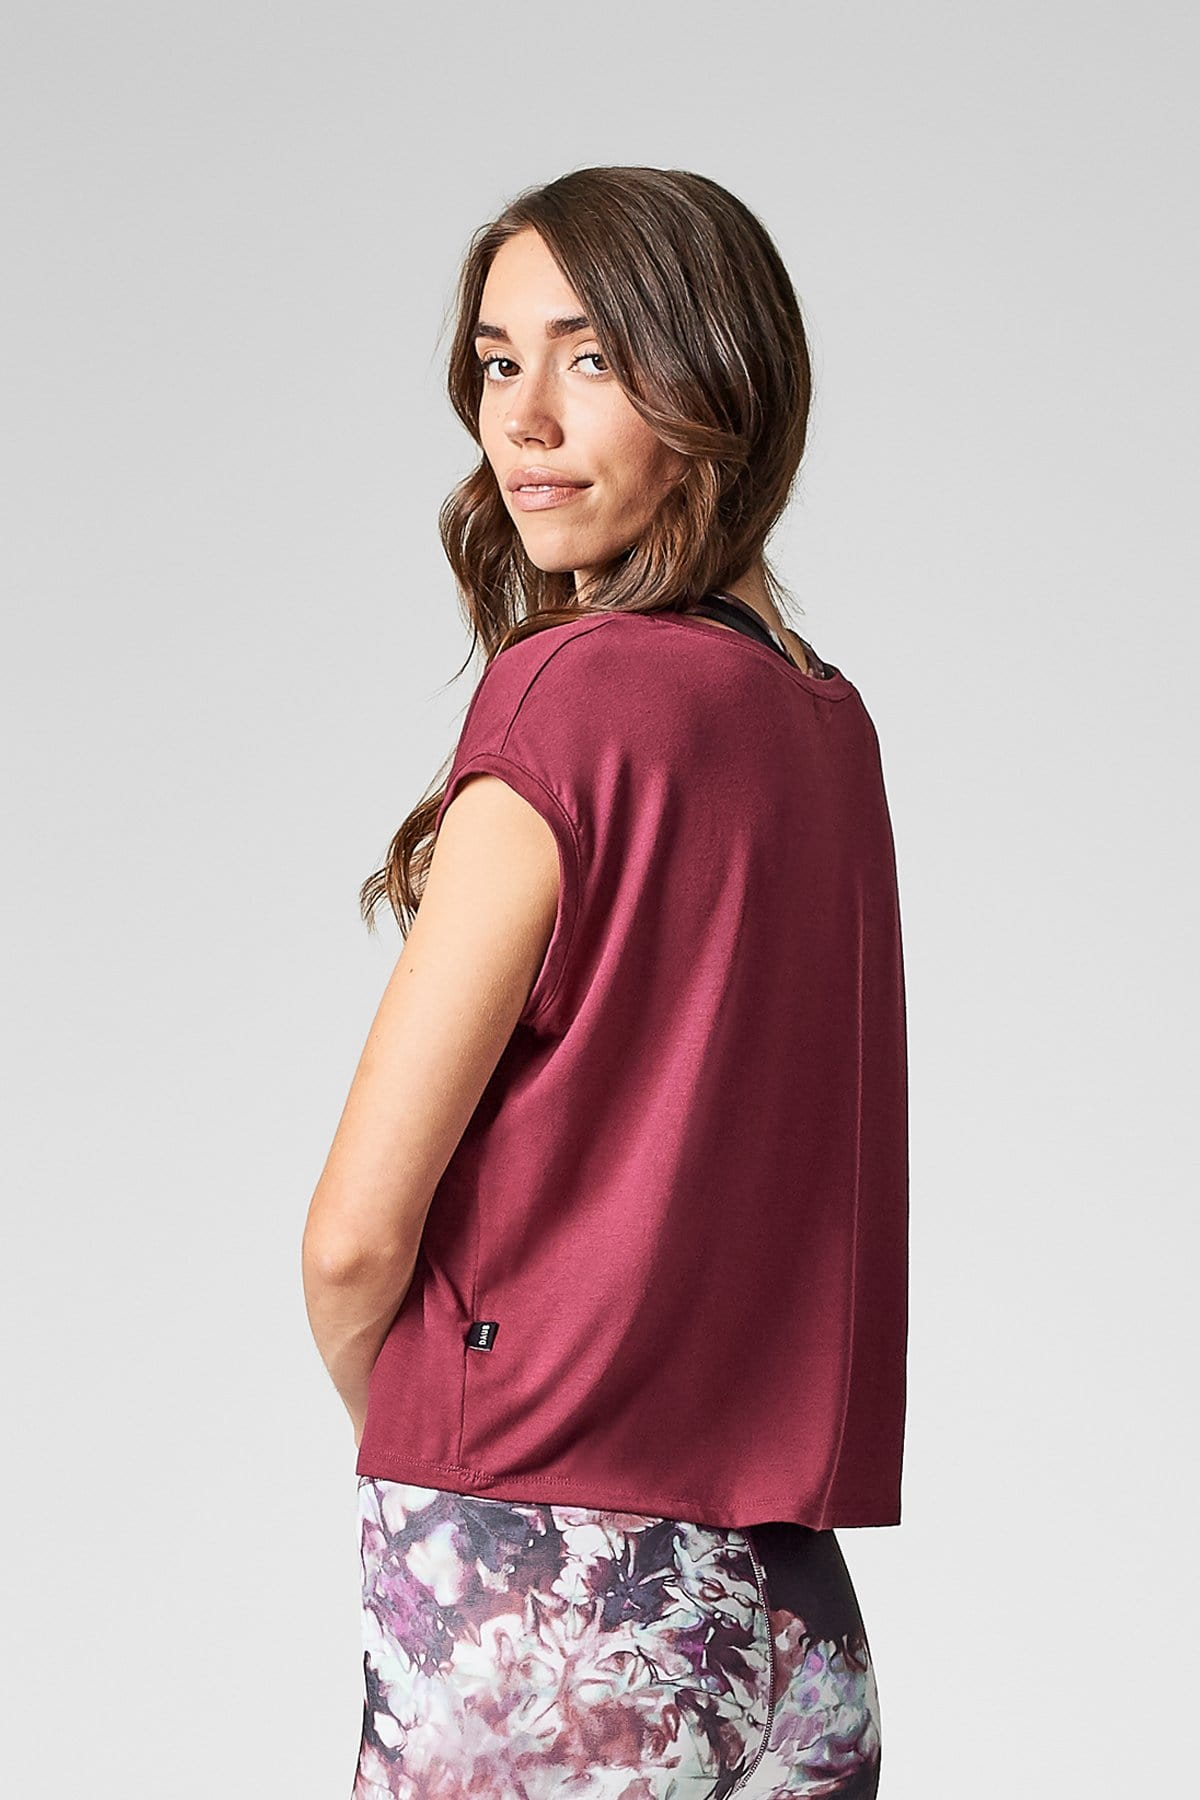 A brunette with long hair wears a burgundy t-shirt that is cropped & loose at the waist